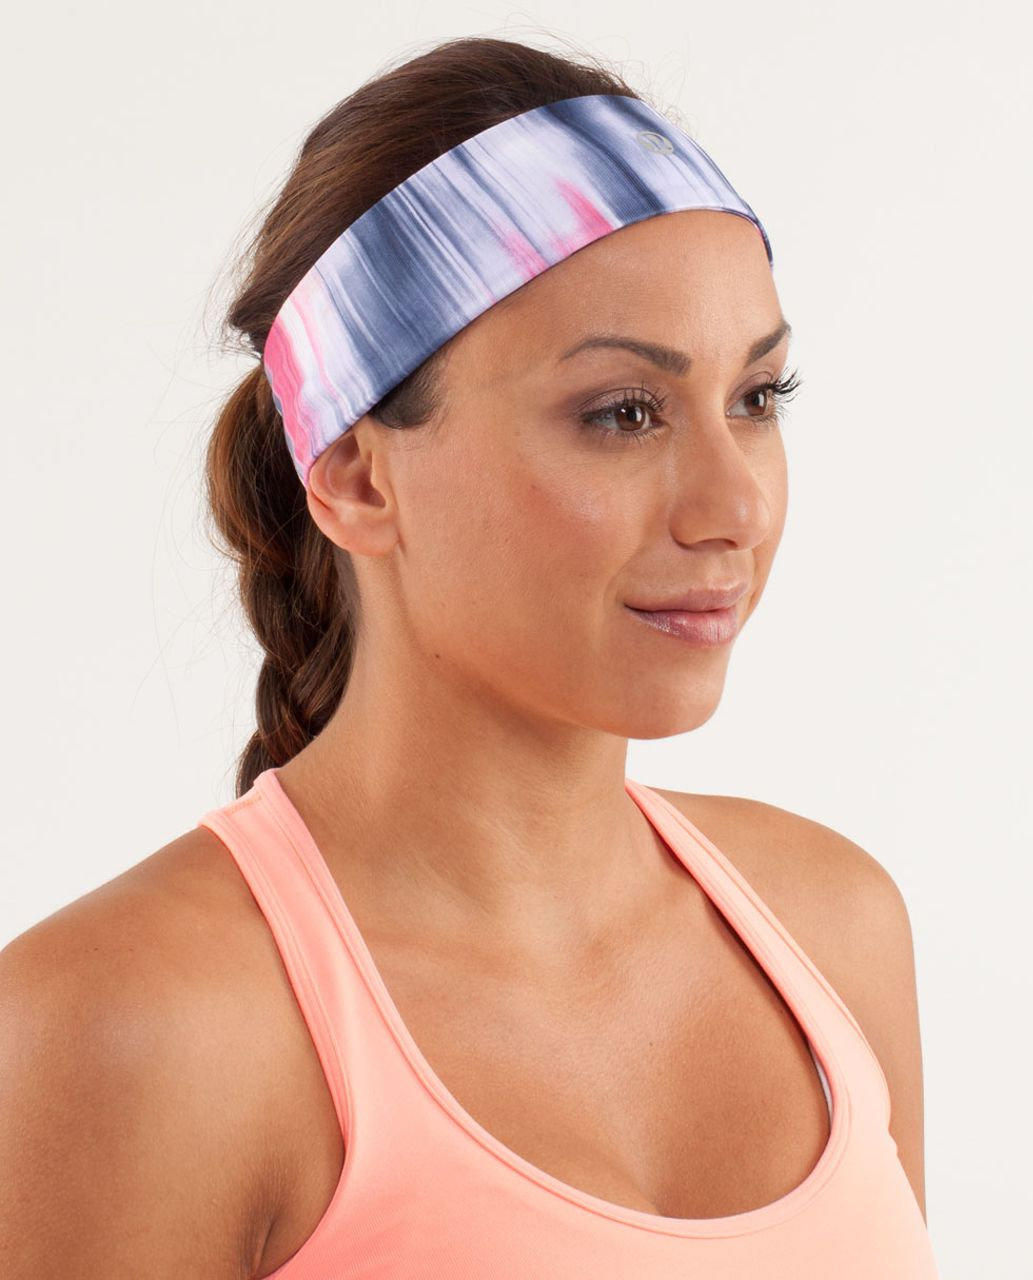 Lululemon Lucky Luon Headband - Mirage Deep Indigo